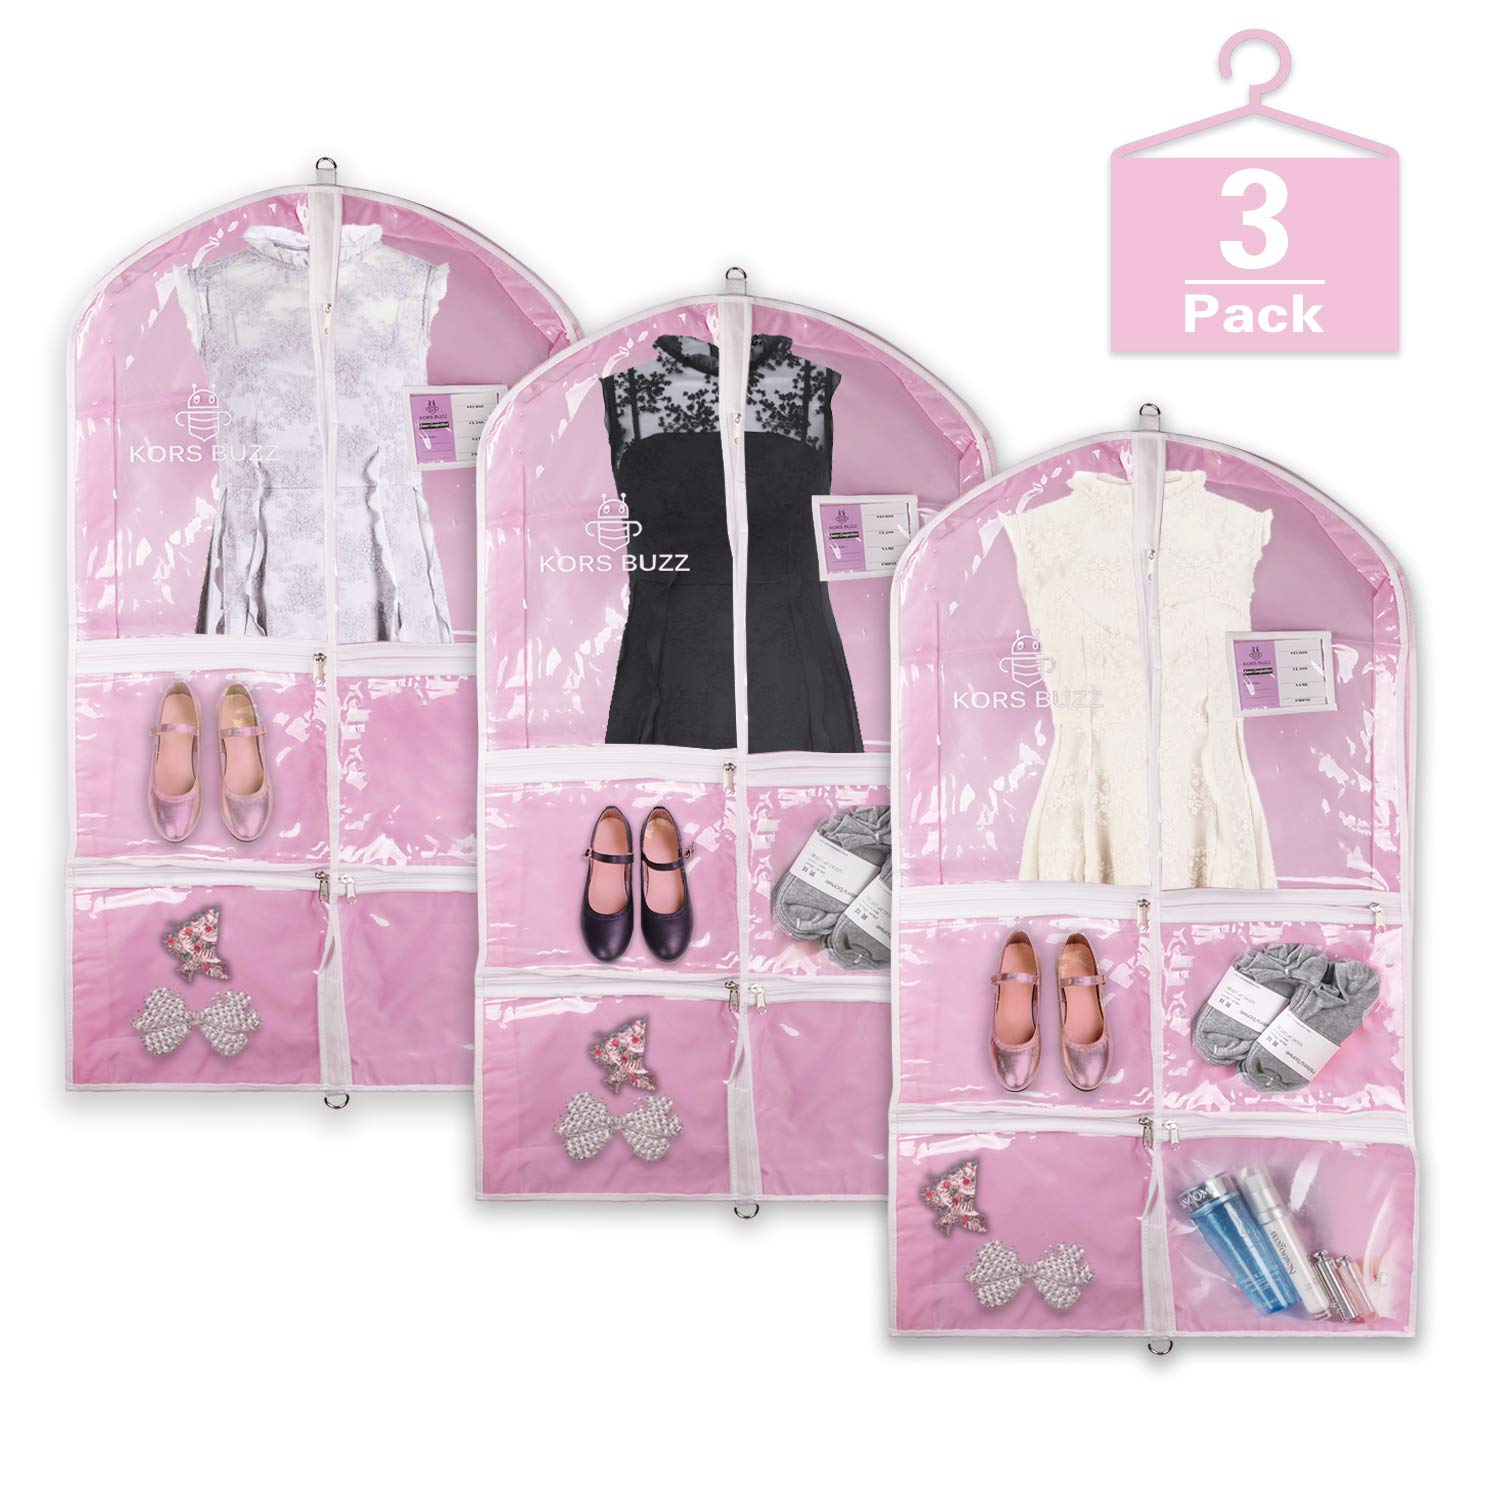 Personalized Girls Ladies Dance  Competitions Garment Dress Bag and Duffle Bag set Embroidered